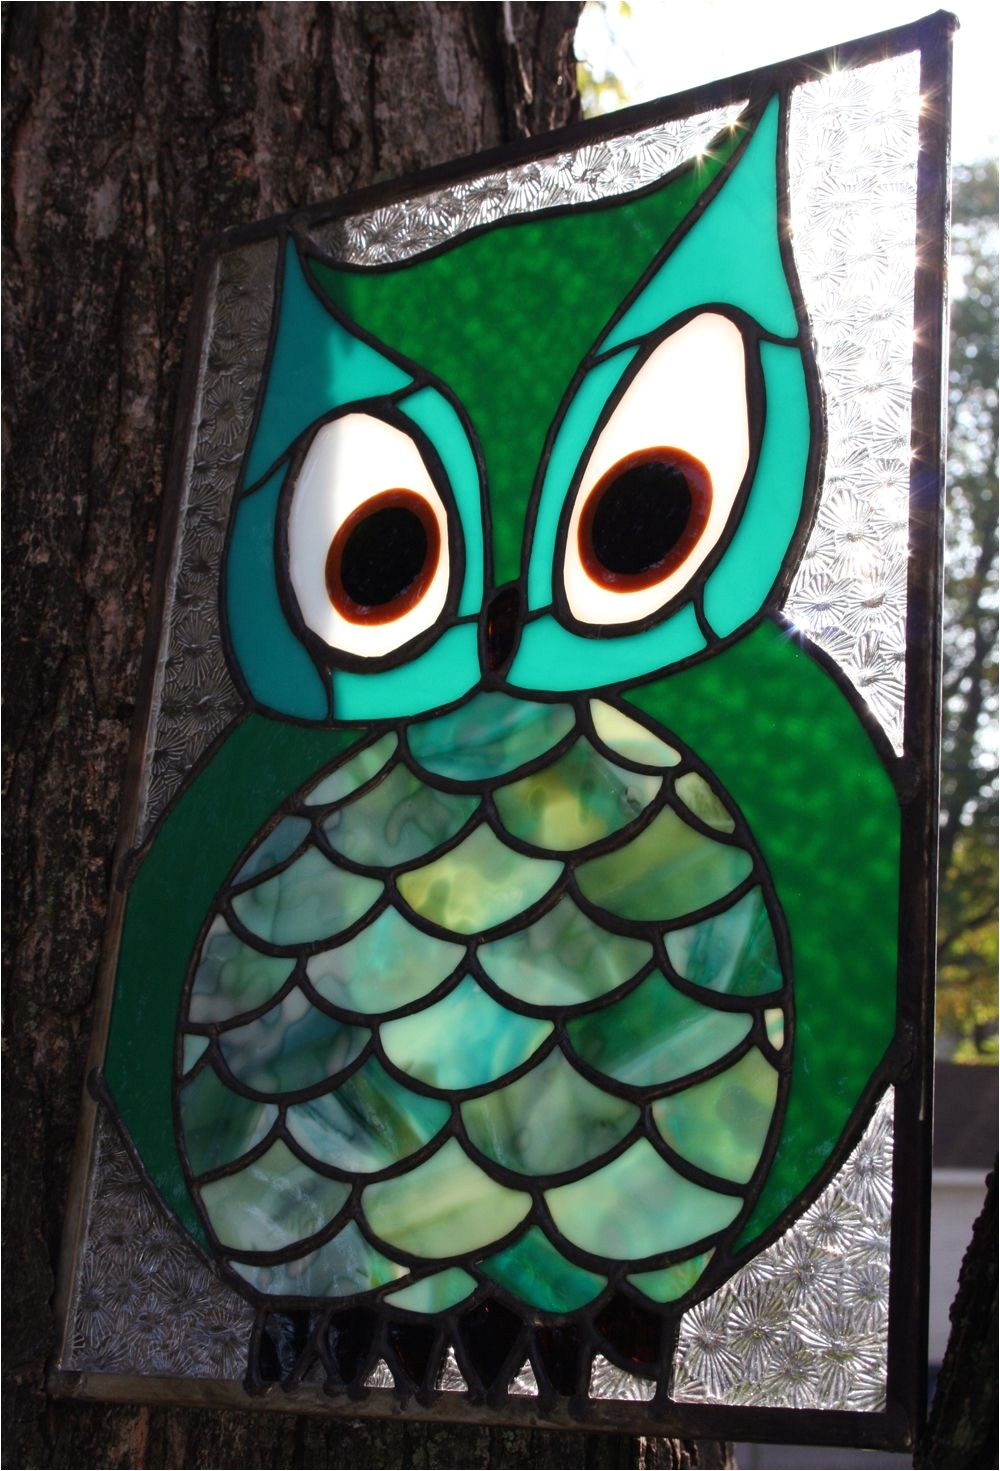 image regarding Free Printable Stained Glass Patterns identify Stained Gl Owl Behaviors No cost Absolutely free Printable Stained Gl